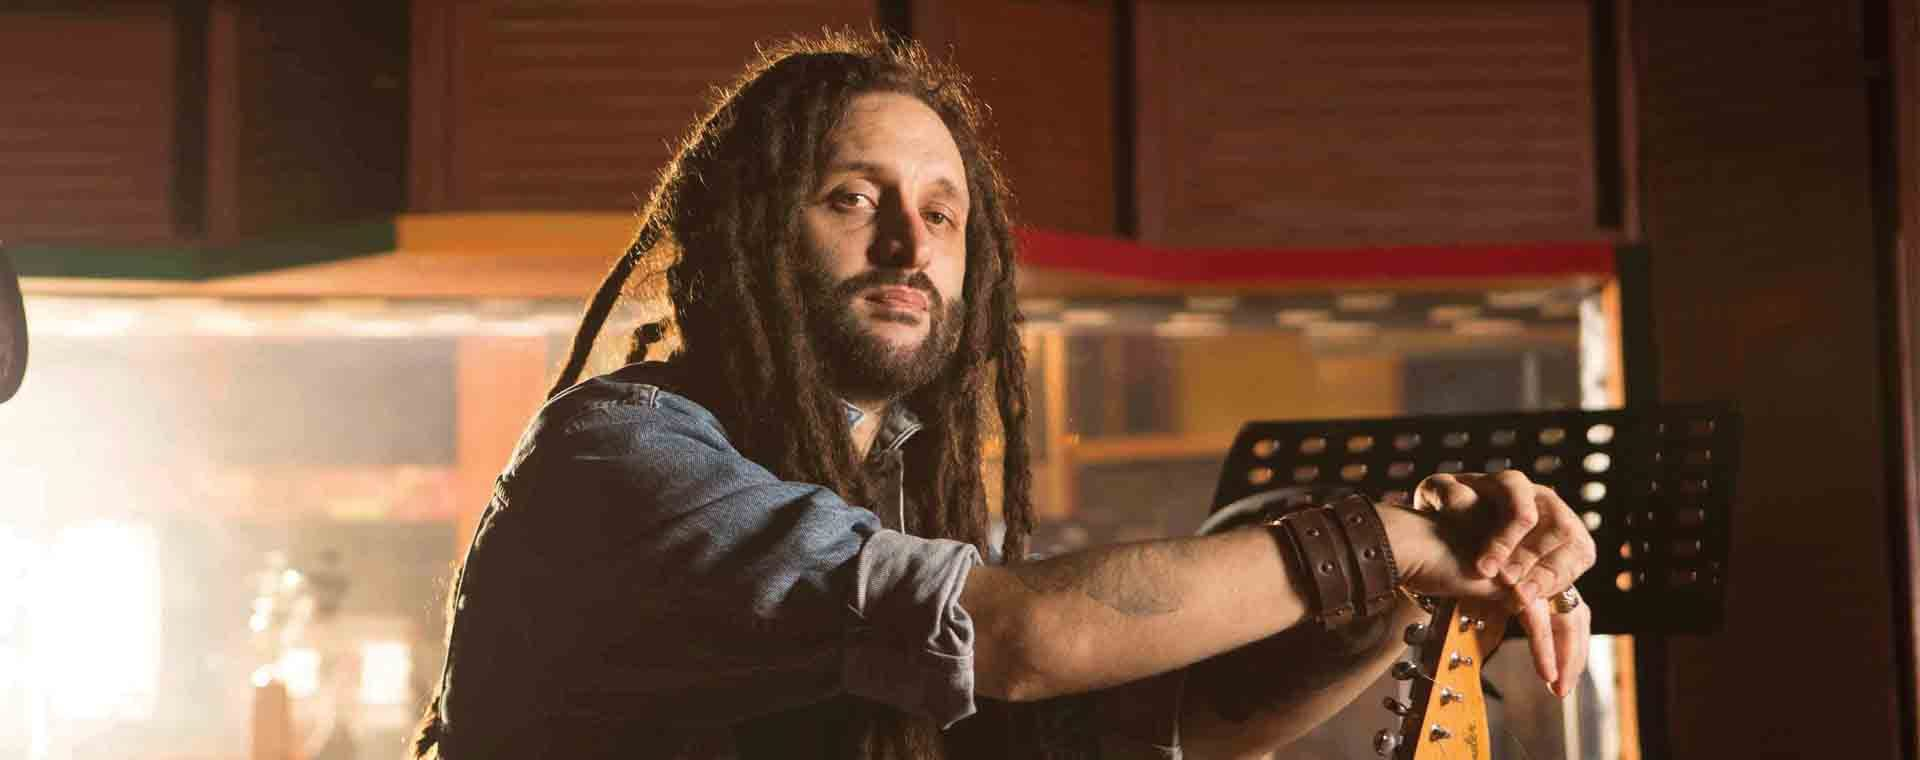 LATEST ISSUE <br><b>Alborosie</b></br>